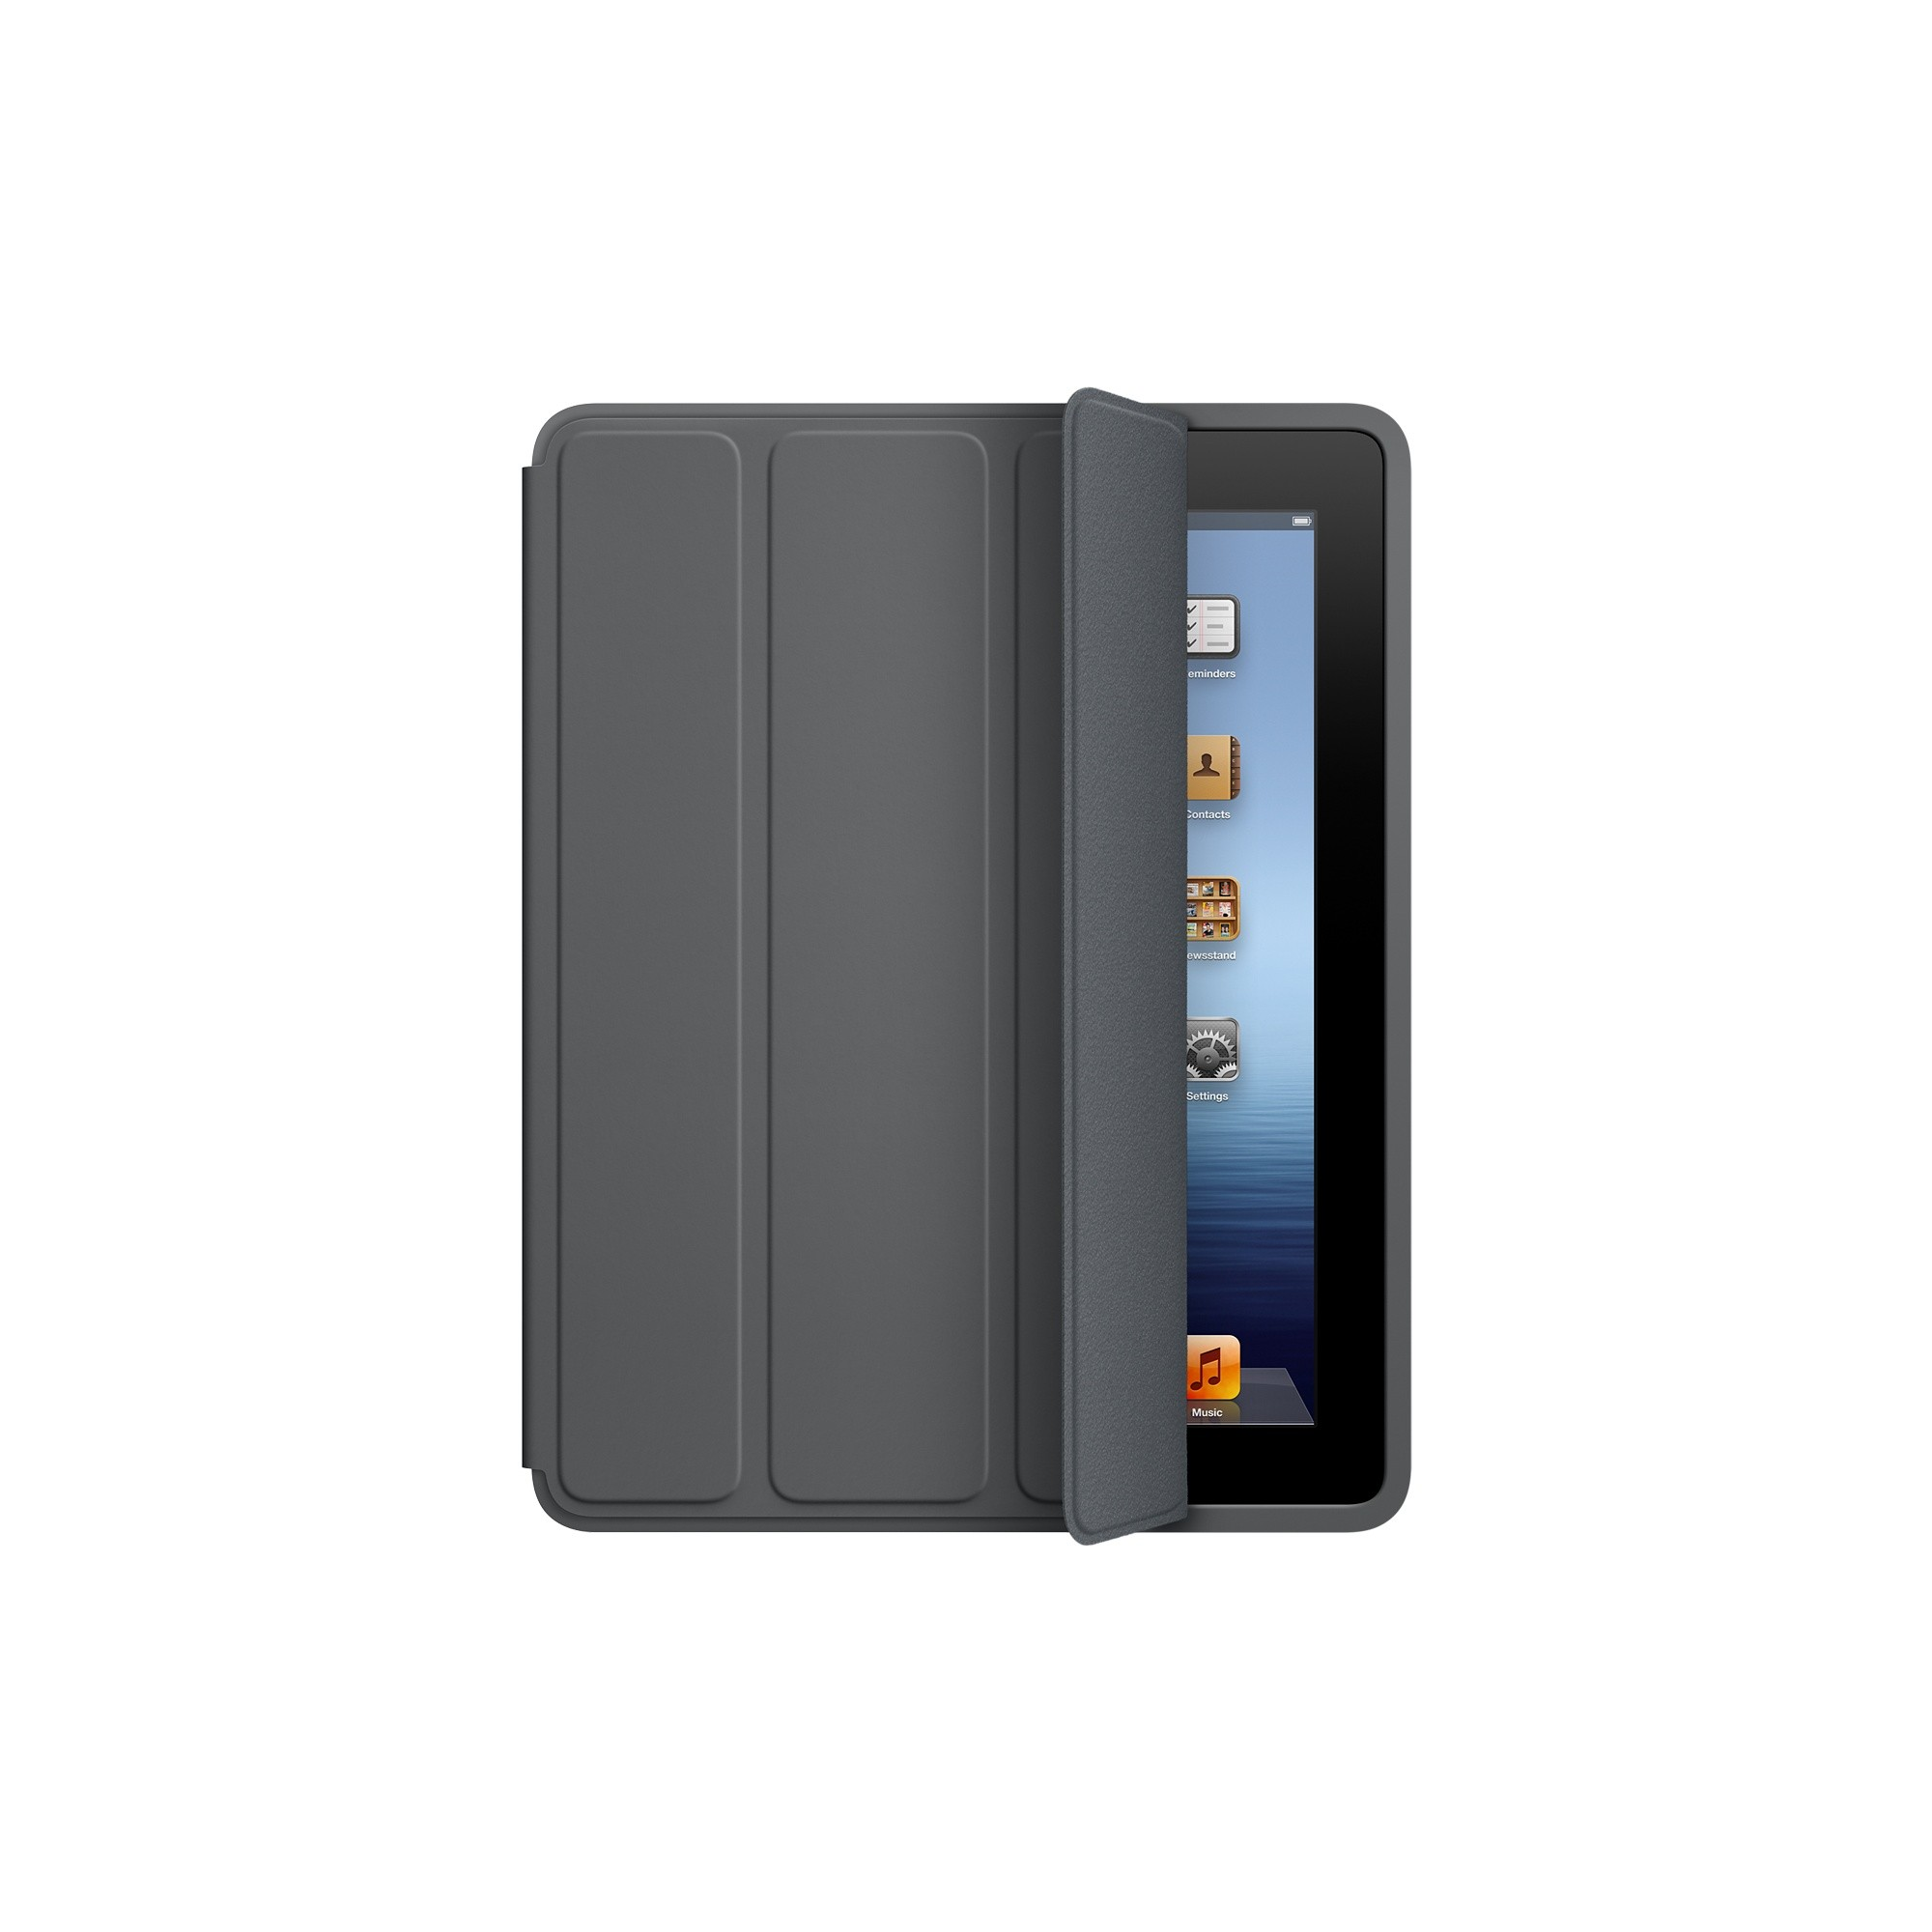 Тъмносив Apple iPad Smart Case защитен кейс